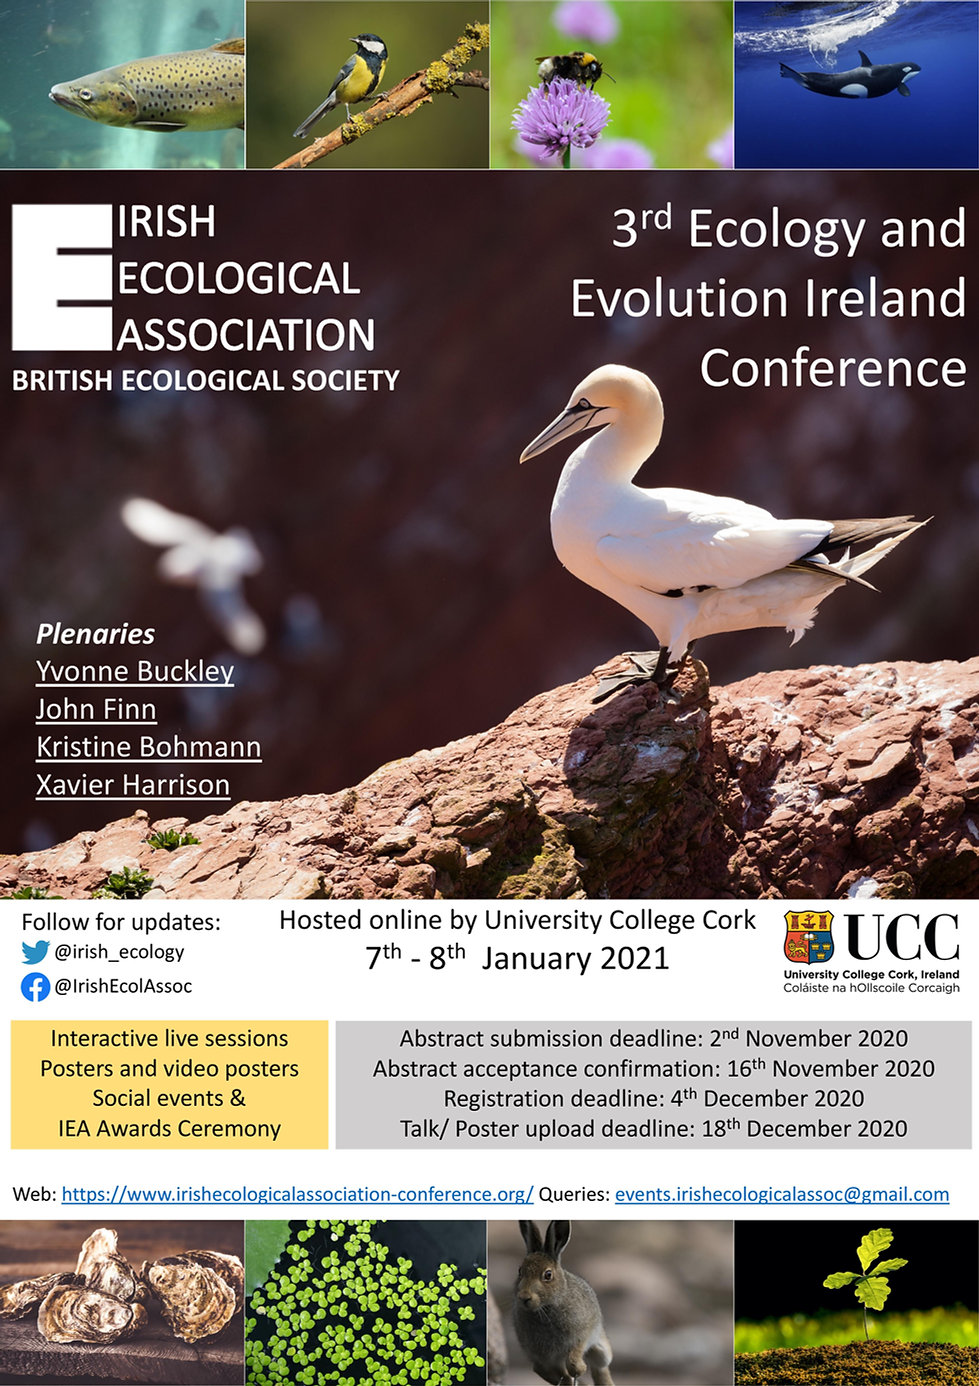 Irish Ecological Association 3rd Ecology and Evolution Ireland Conference, Plenaries: Yvonne Buckley, John Finn, Kristine Bohmann, Xavier Harrison. Hosted online by University College Cork. Registration deadline: 4th December 2020. Links to Twitter, Facebook, and email. These links are also available in our menu